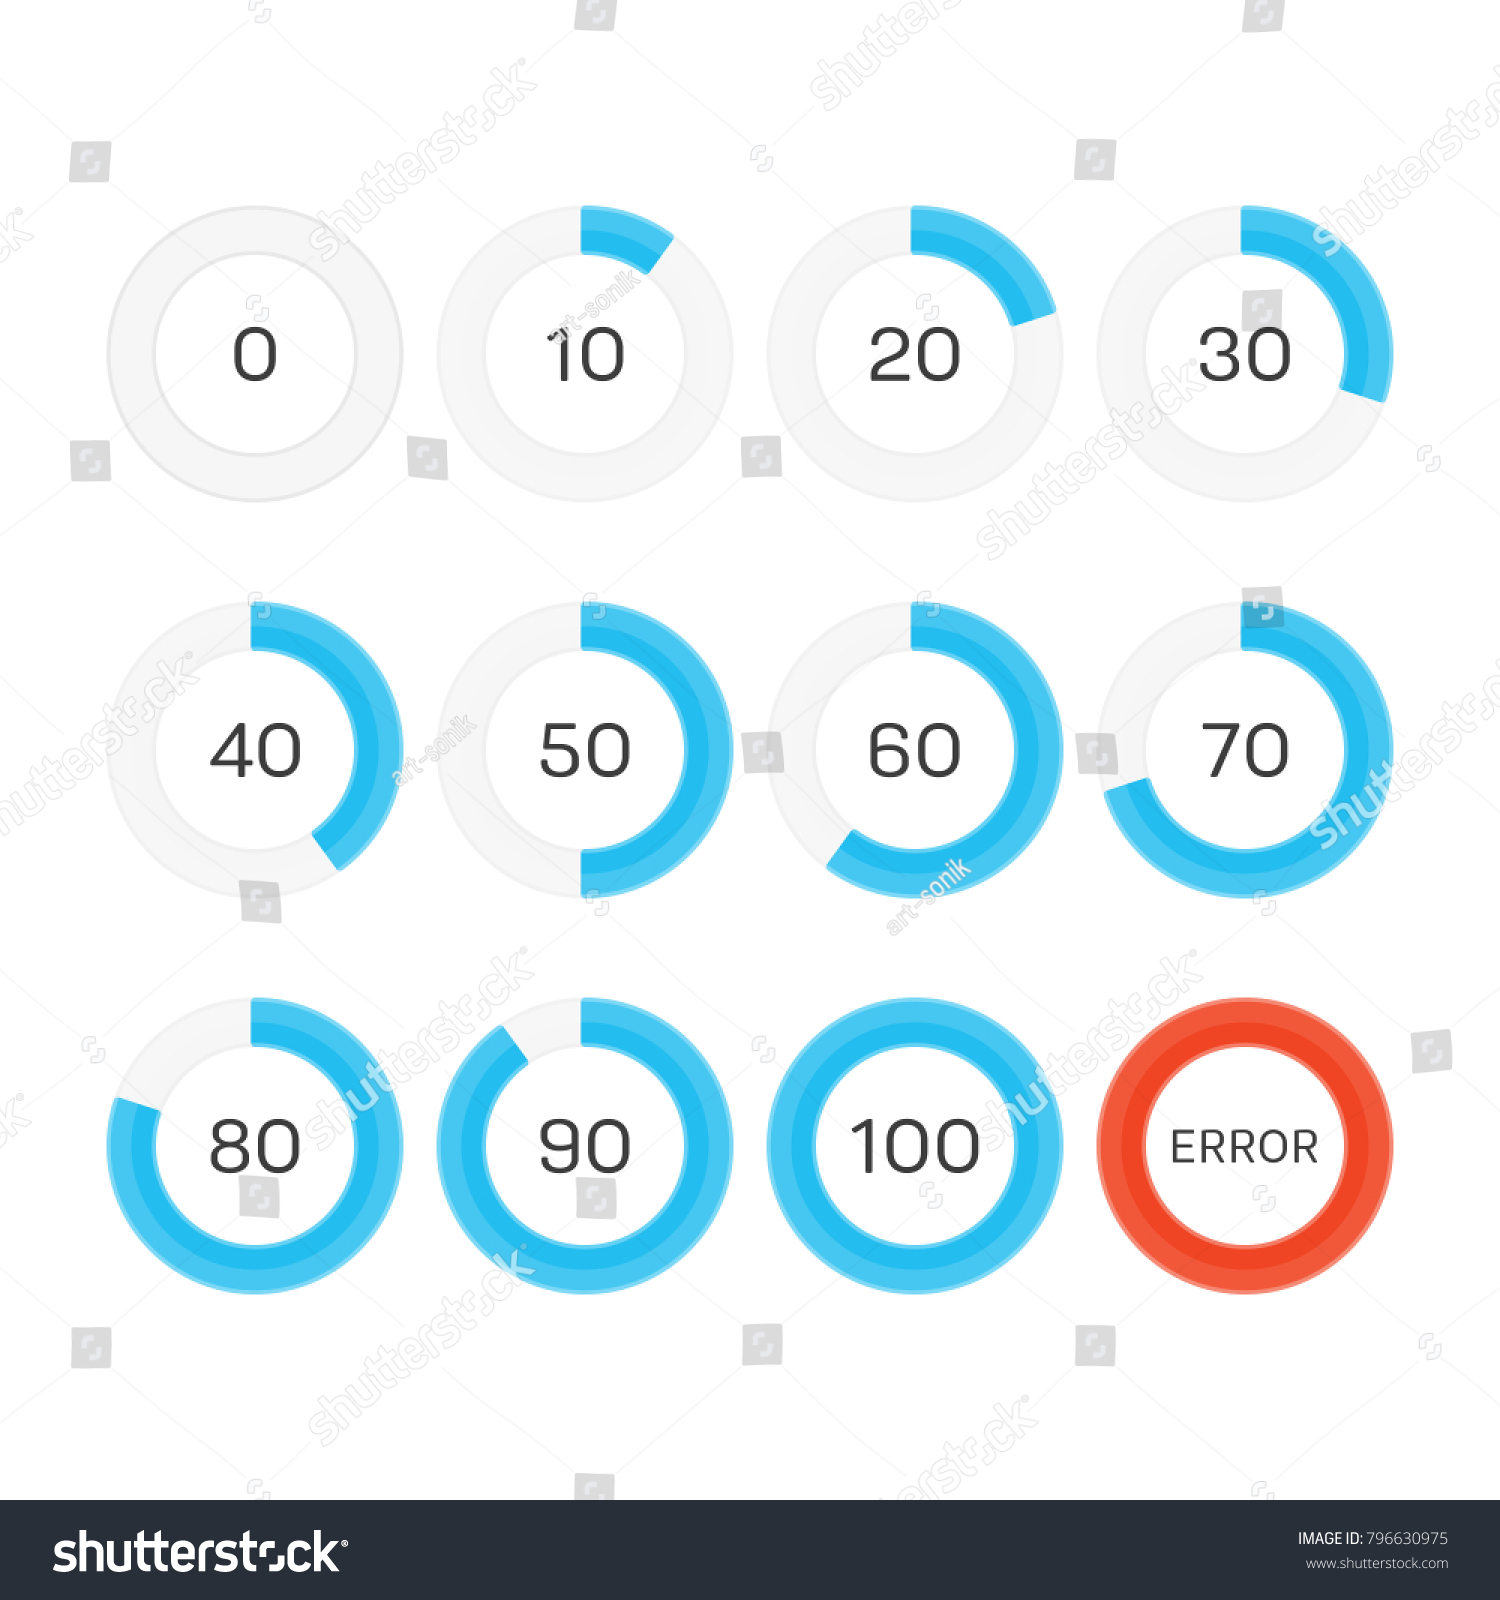 Pie chart vs bar graph gallery free any chart examples pie chart vs bar graph image collections free any chart examples pie chart vs bar graph nvjuhfo Images